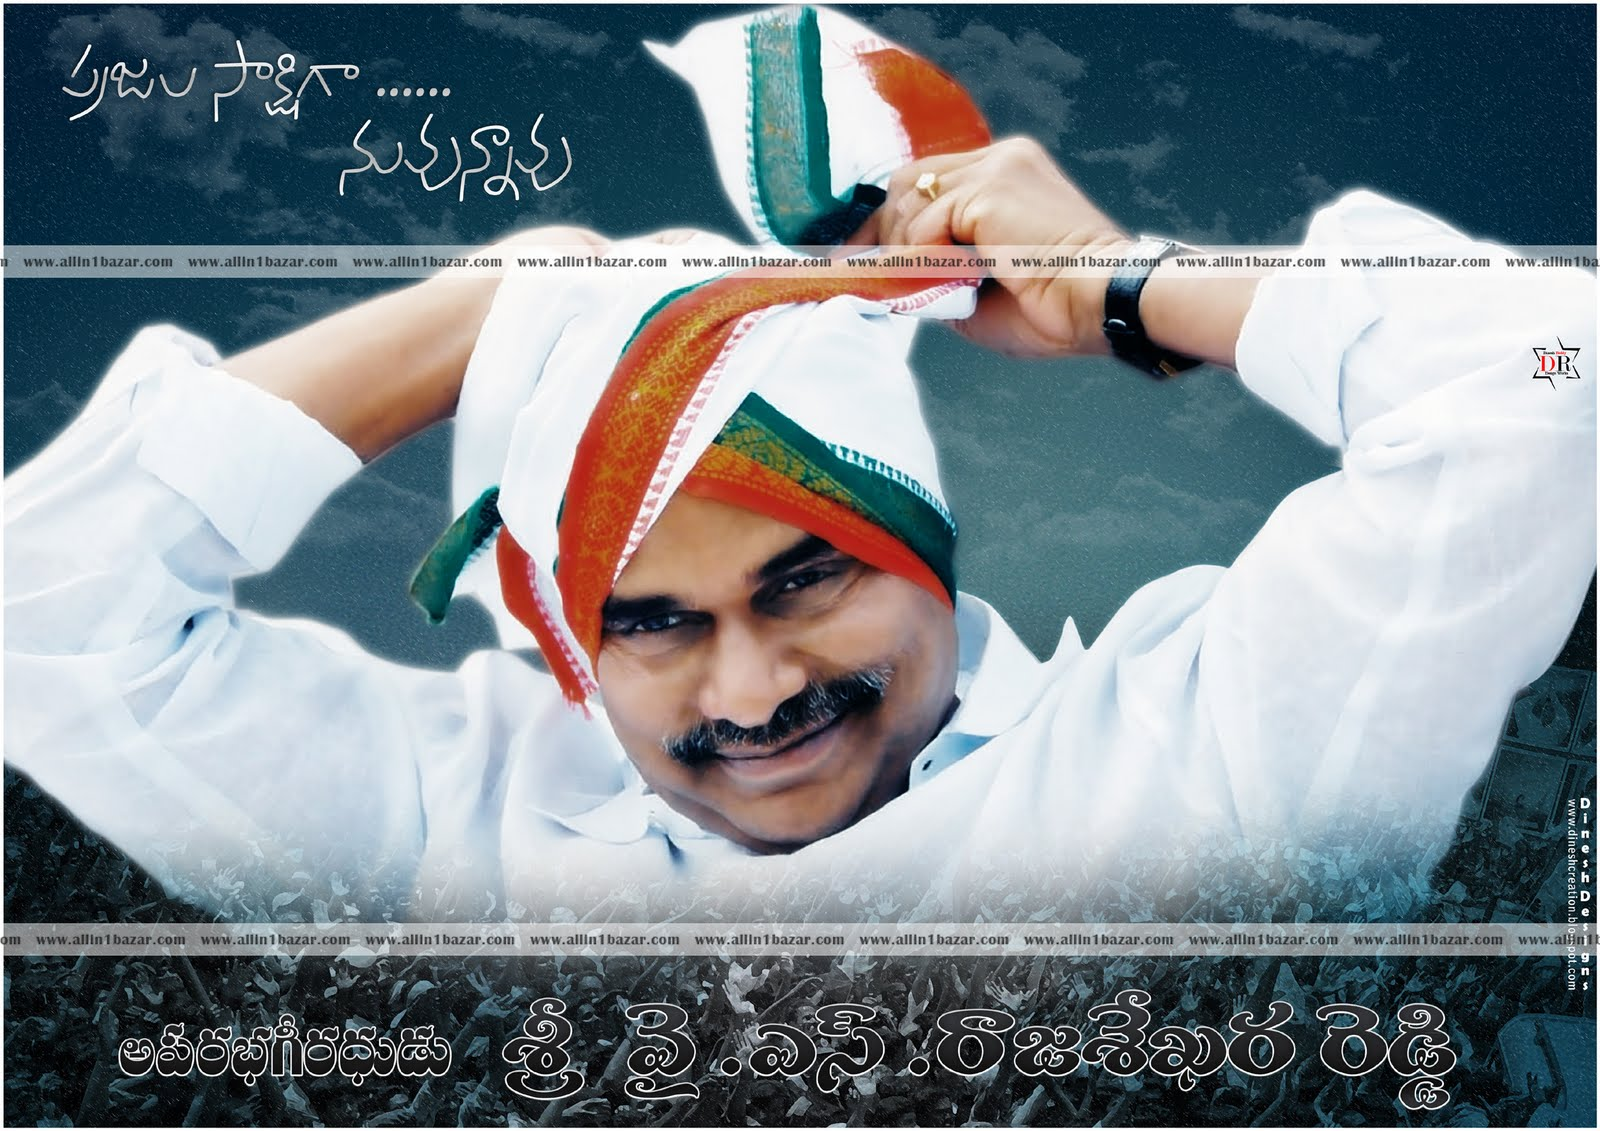 Dinesh Designs: YSR and YS JAGAN wallpapers - Special on YSR JAYANTHI